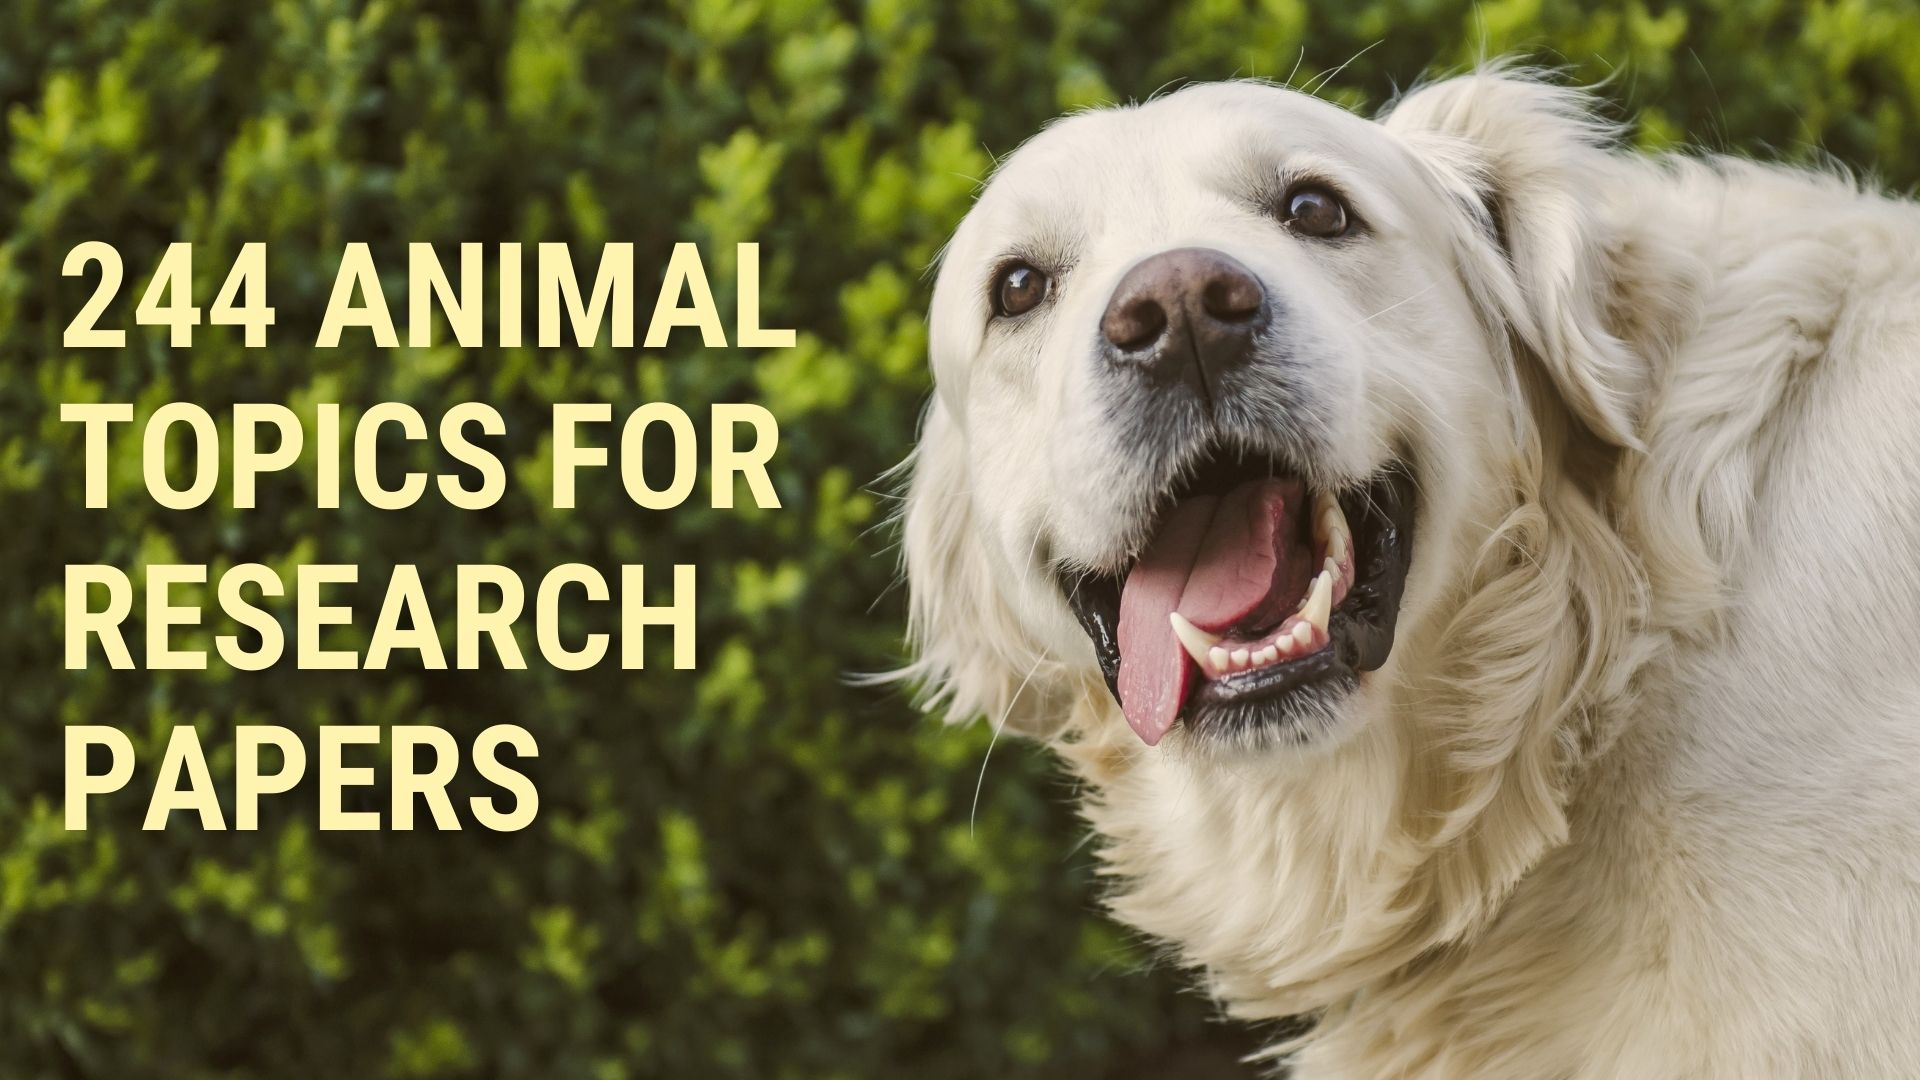 244 Awesome Animal Topics for Research Papers